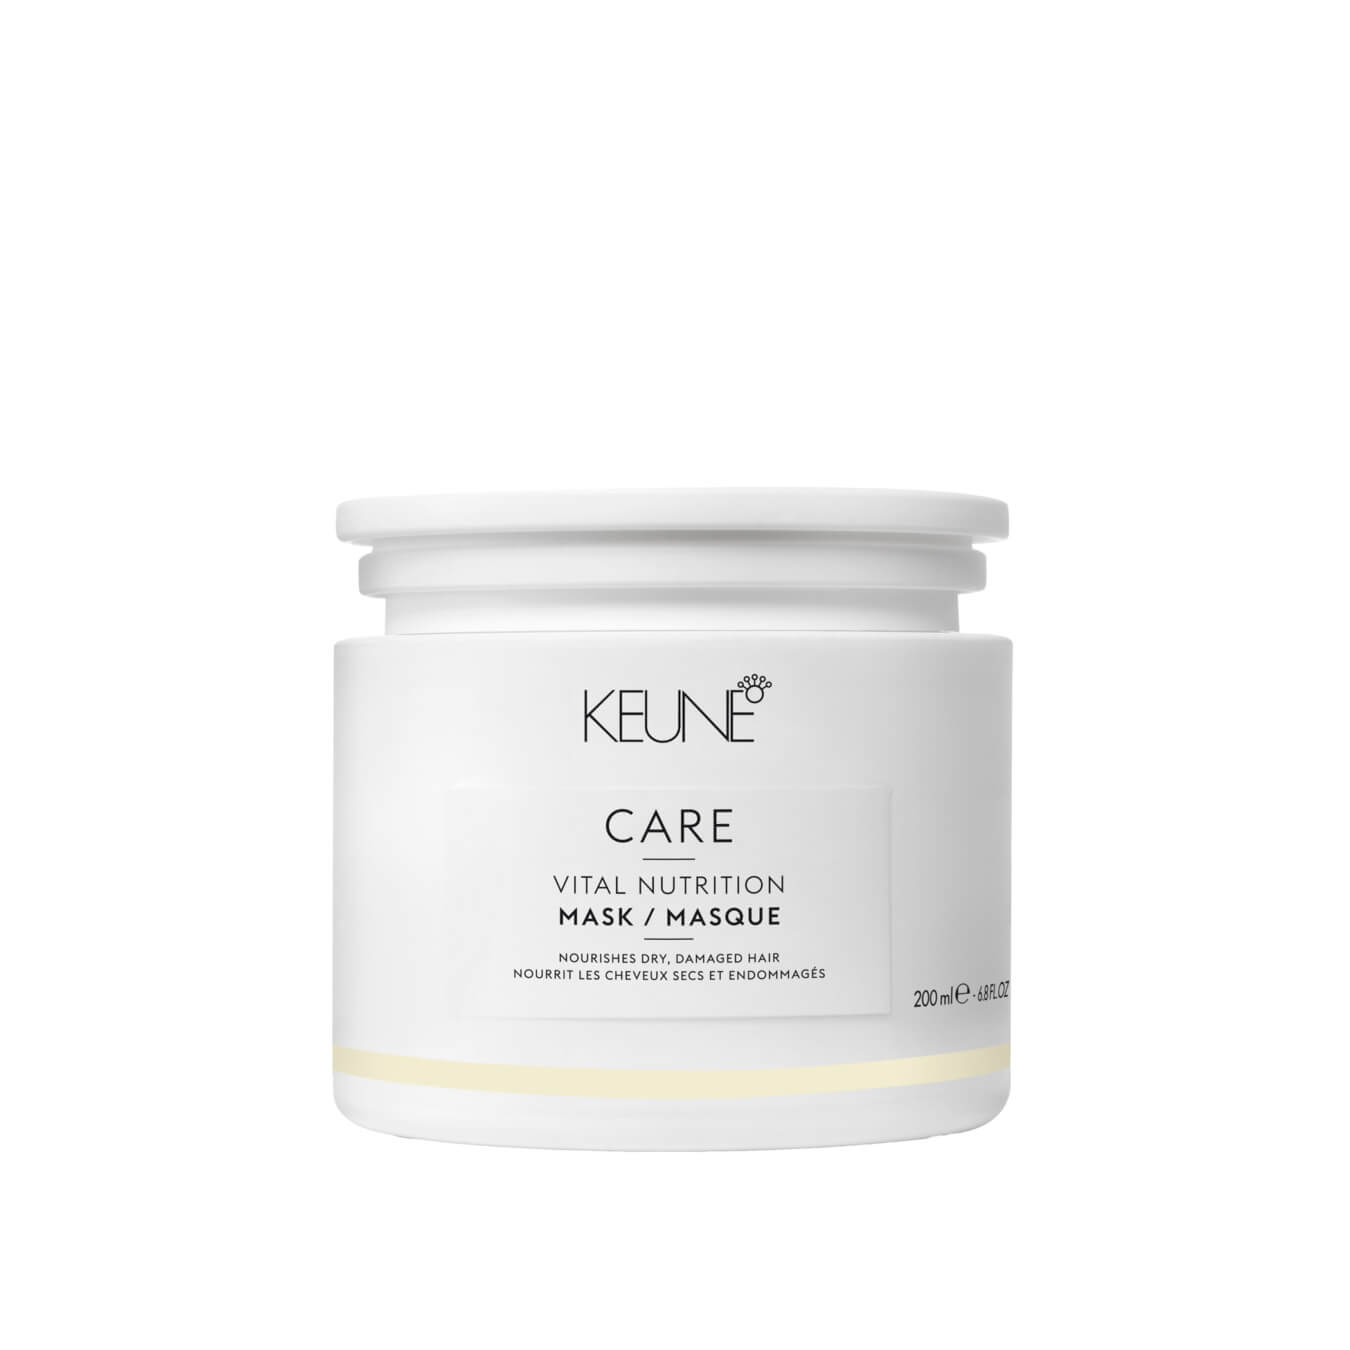 Kauf Keune Care Vital Nutrition Mask 200ml